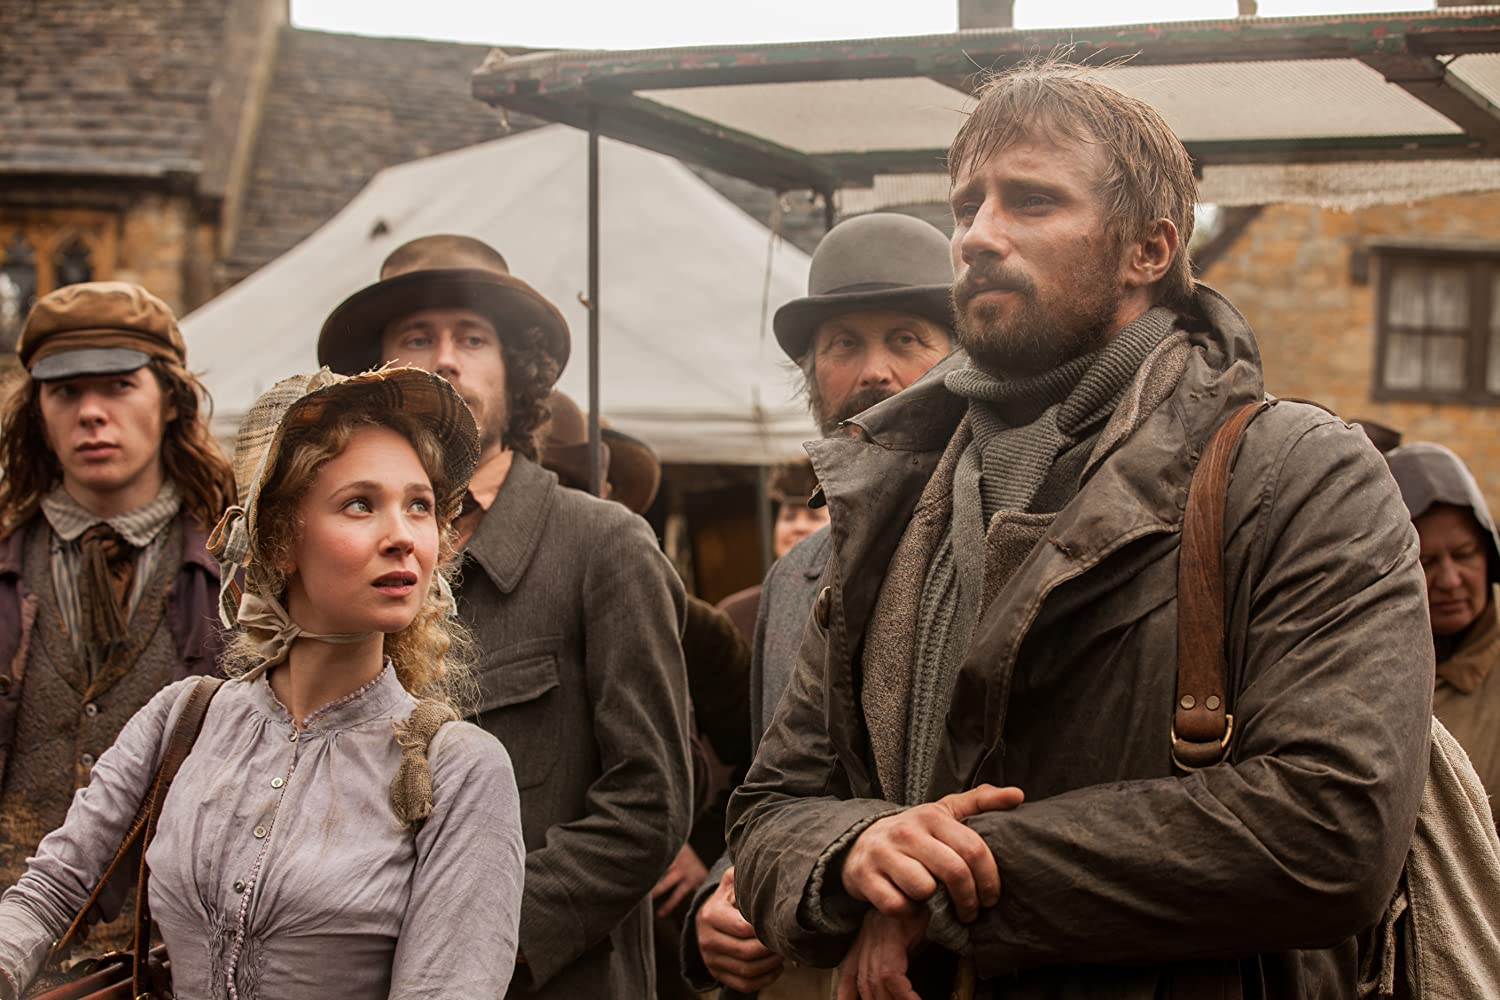 Matthias Schoenaerts and Juno Temple in Far from the Madding Crowd (2015)